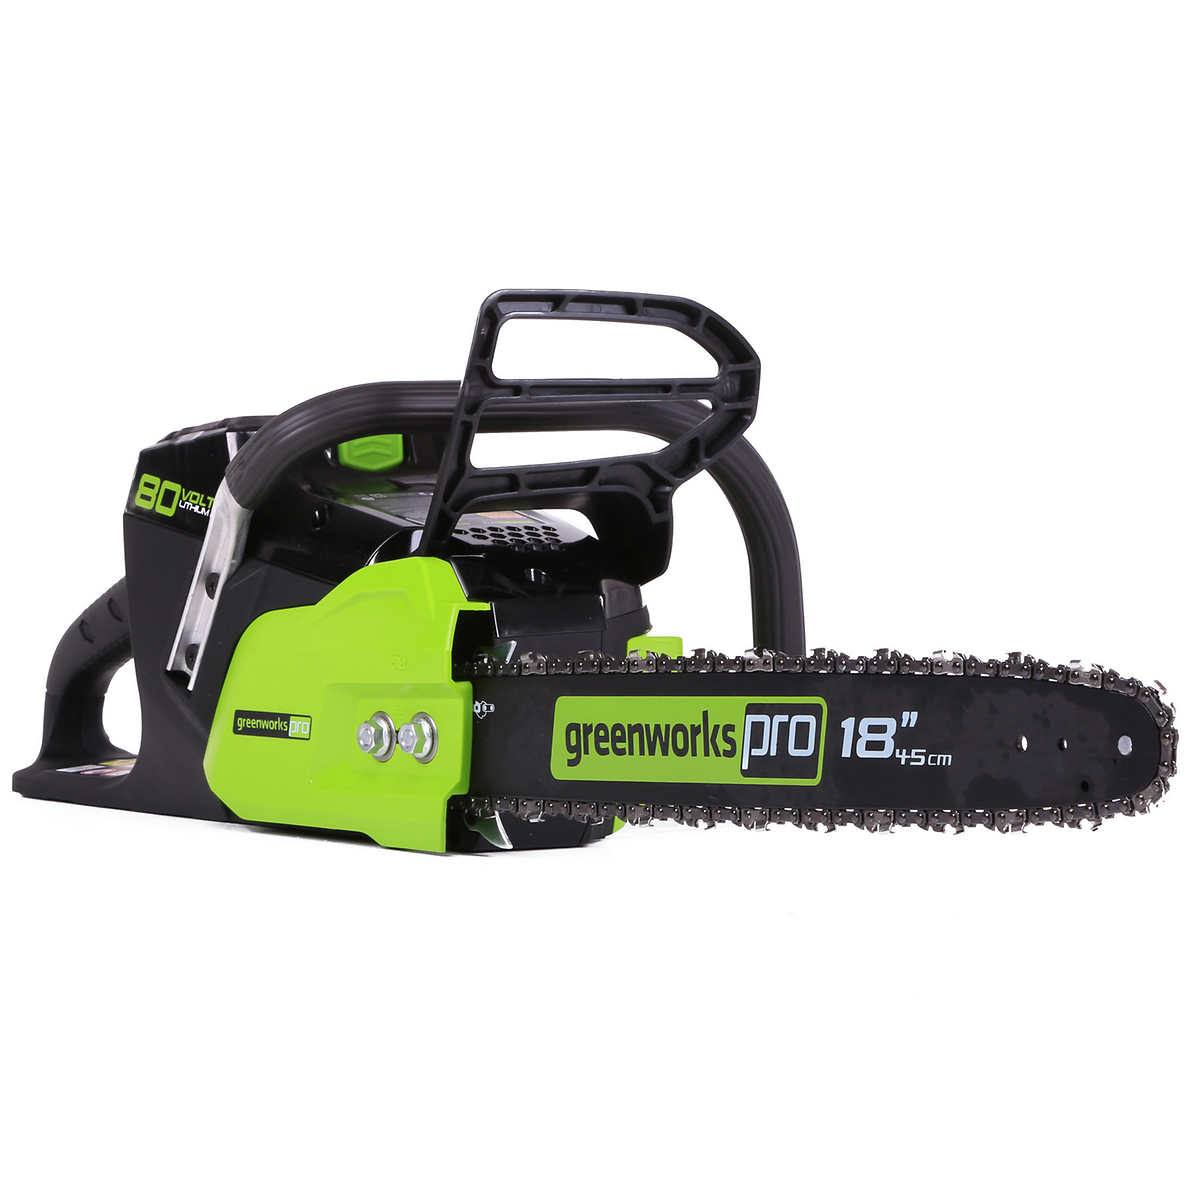 greenworks pro 80 v 45.7 cm (18 in.) cordless chainsaw, bare tool only